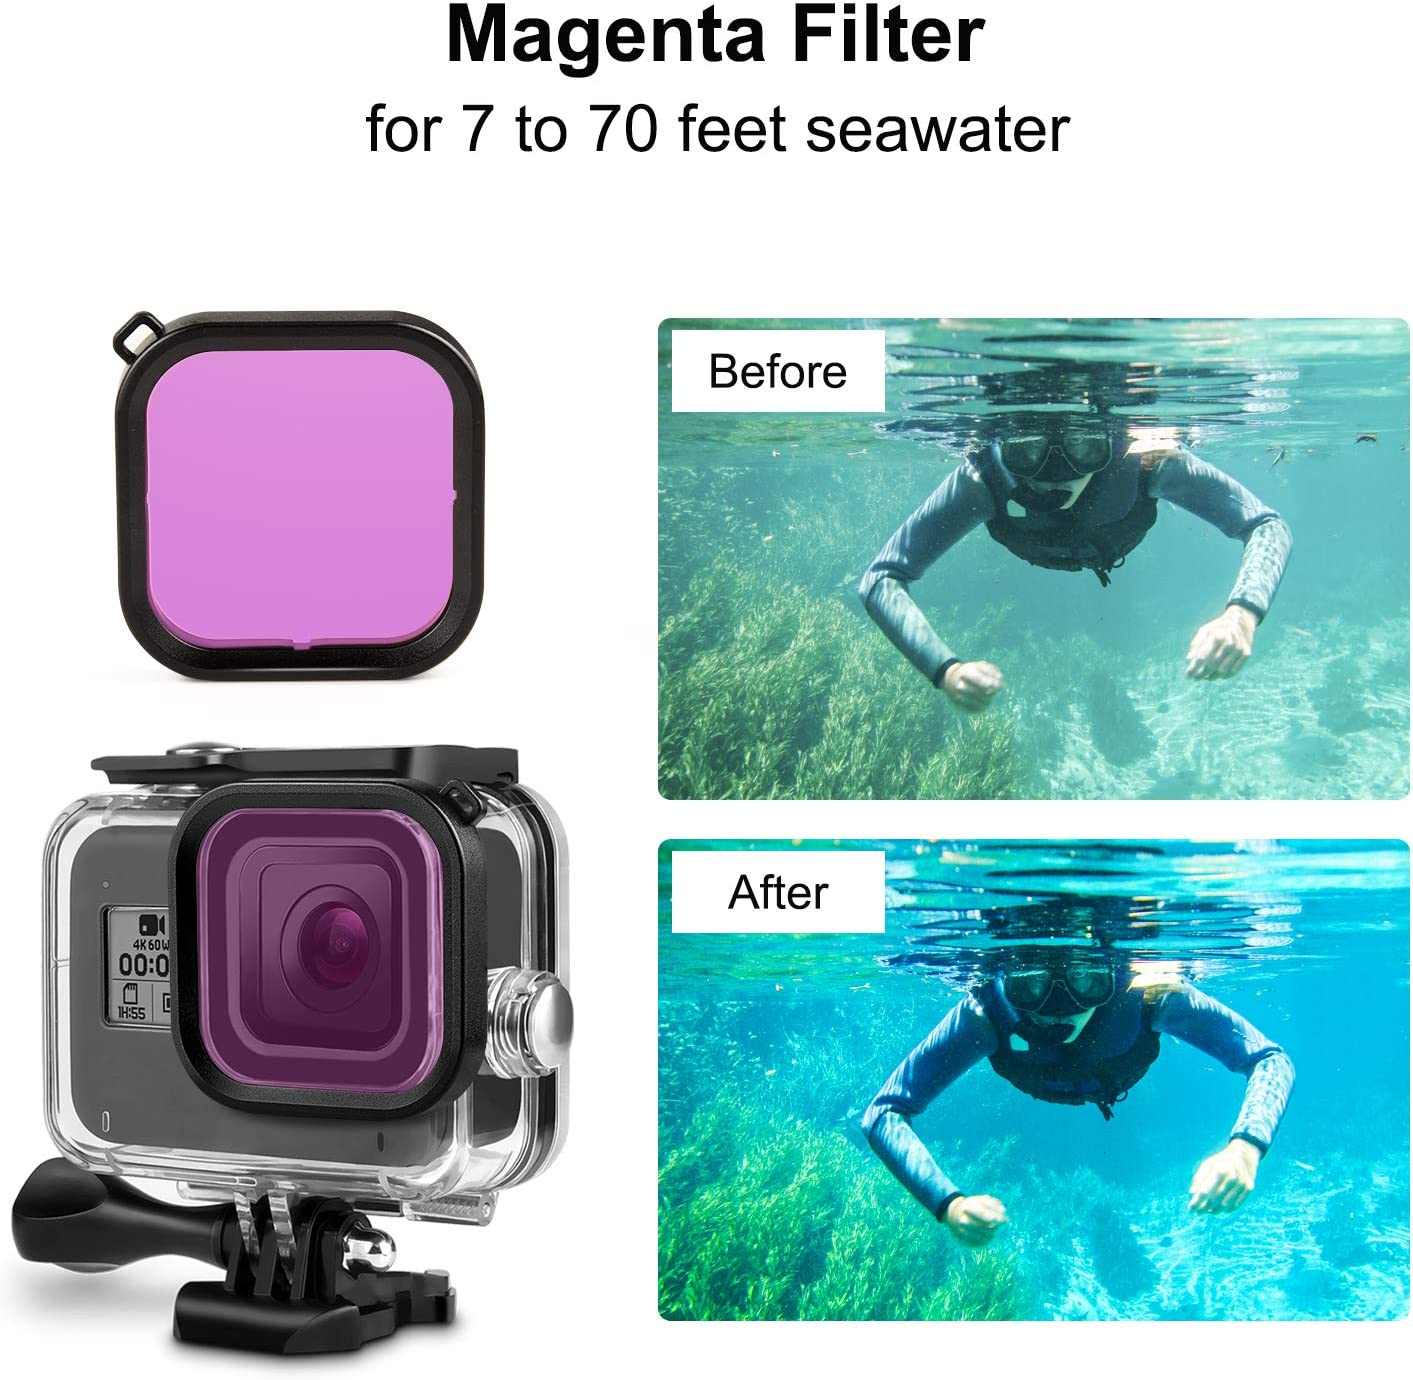 Red, Light Red, Magenta 3-Pack Kupton Diving Lens Filters Accessories for GoPro Hero 8 Black ONLY Fits Kupton Waterproof Housing Case for GoPro Hero8 Action Camera Snorkel Scuba Filter Kit